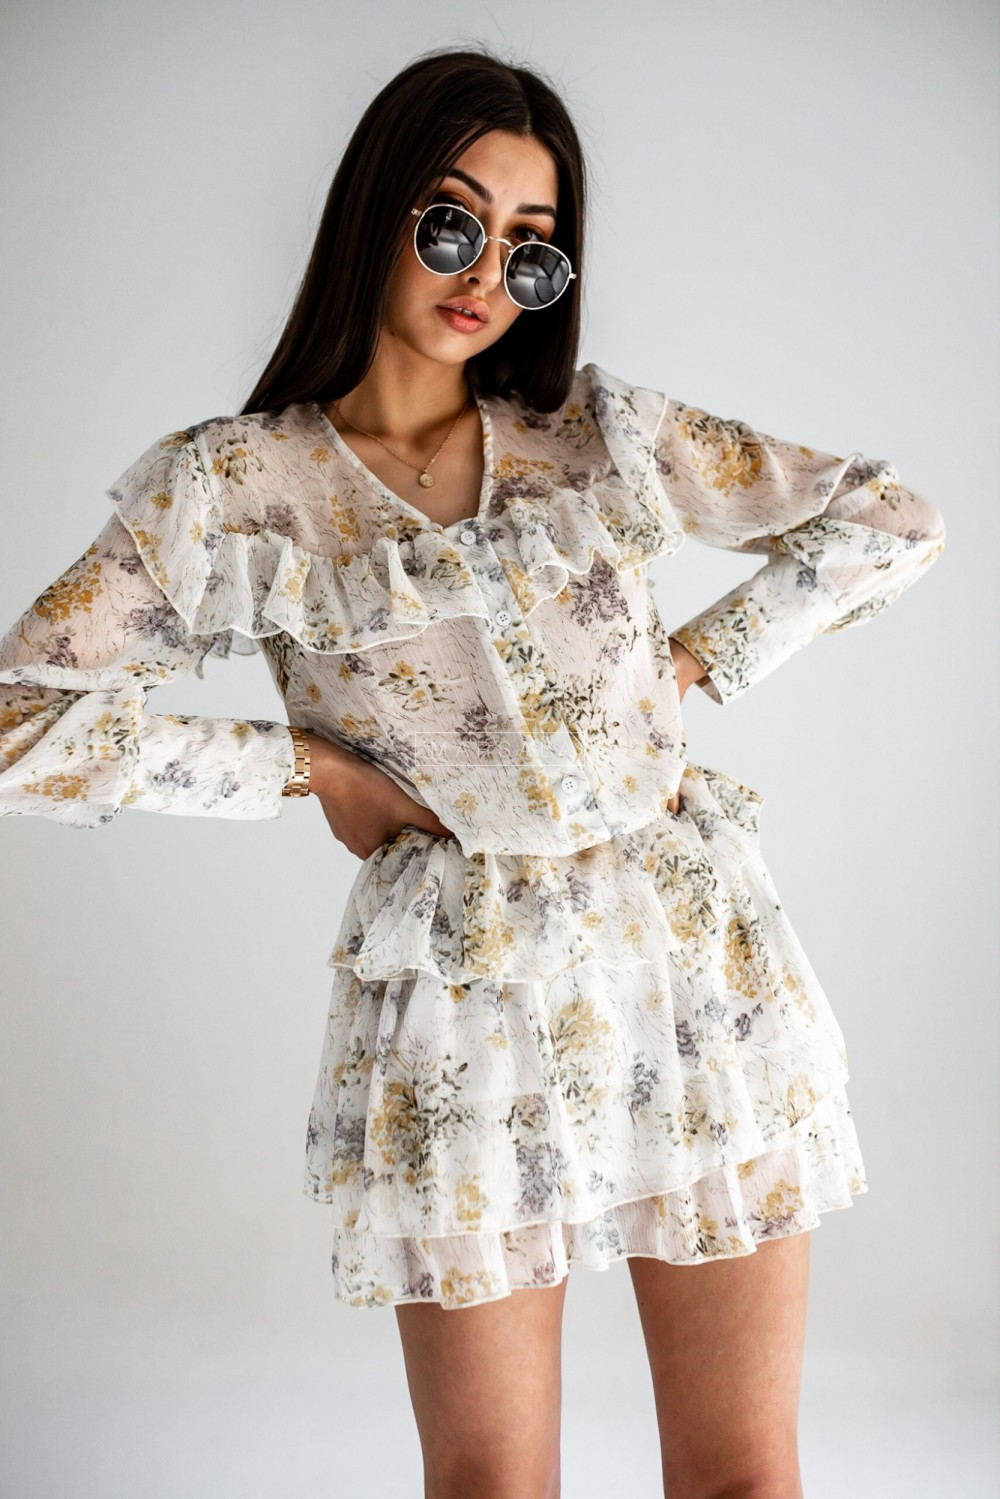 Blouse + skirt set in floral print, powder pink - RITA YELLOW